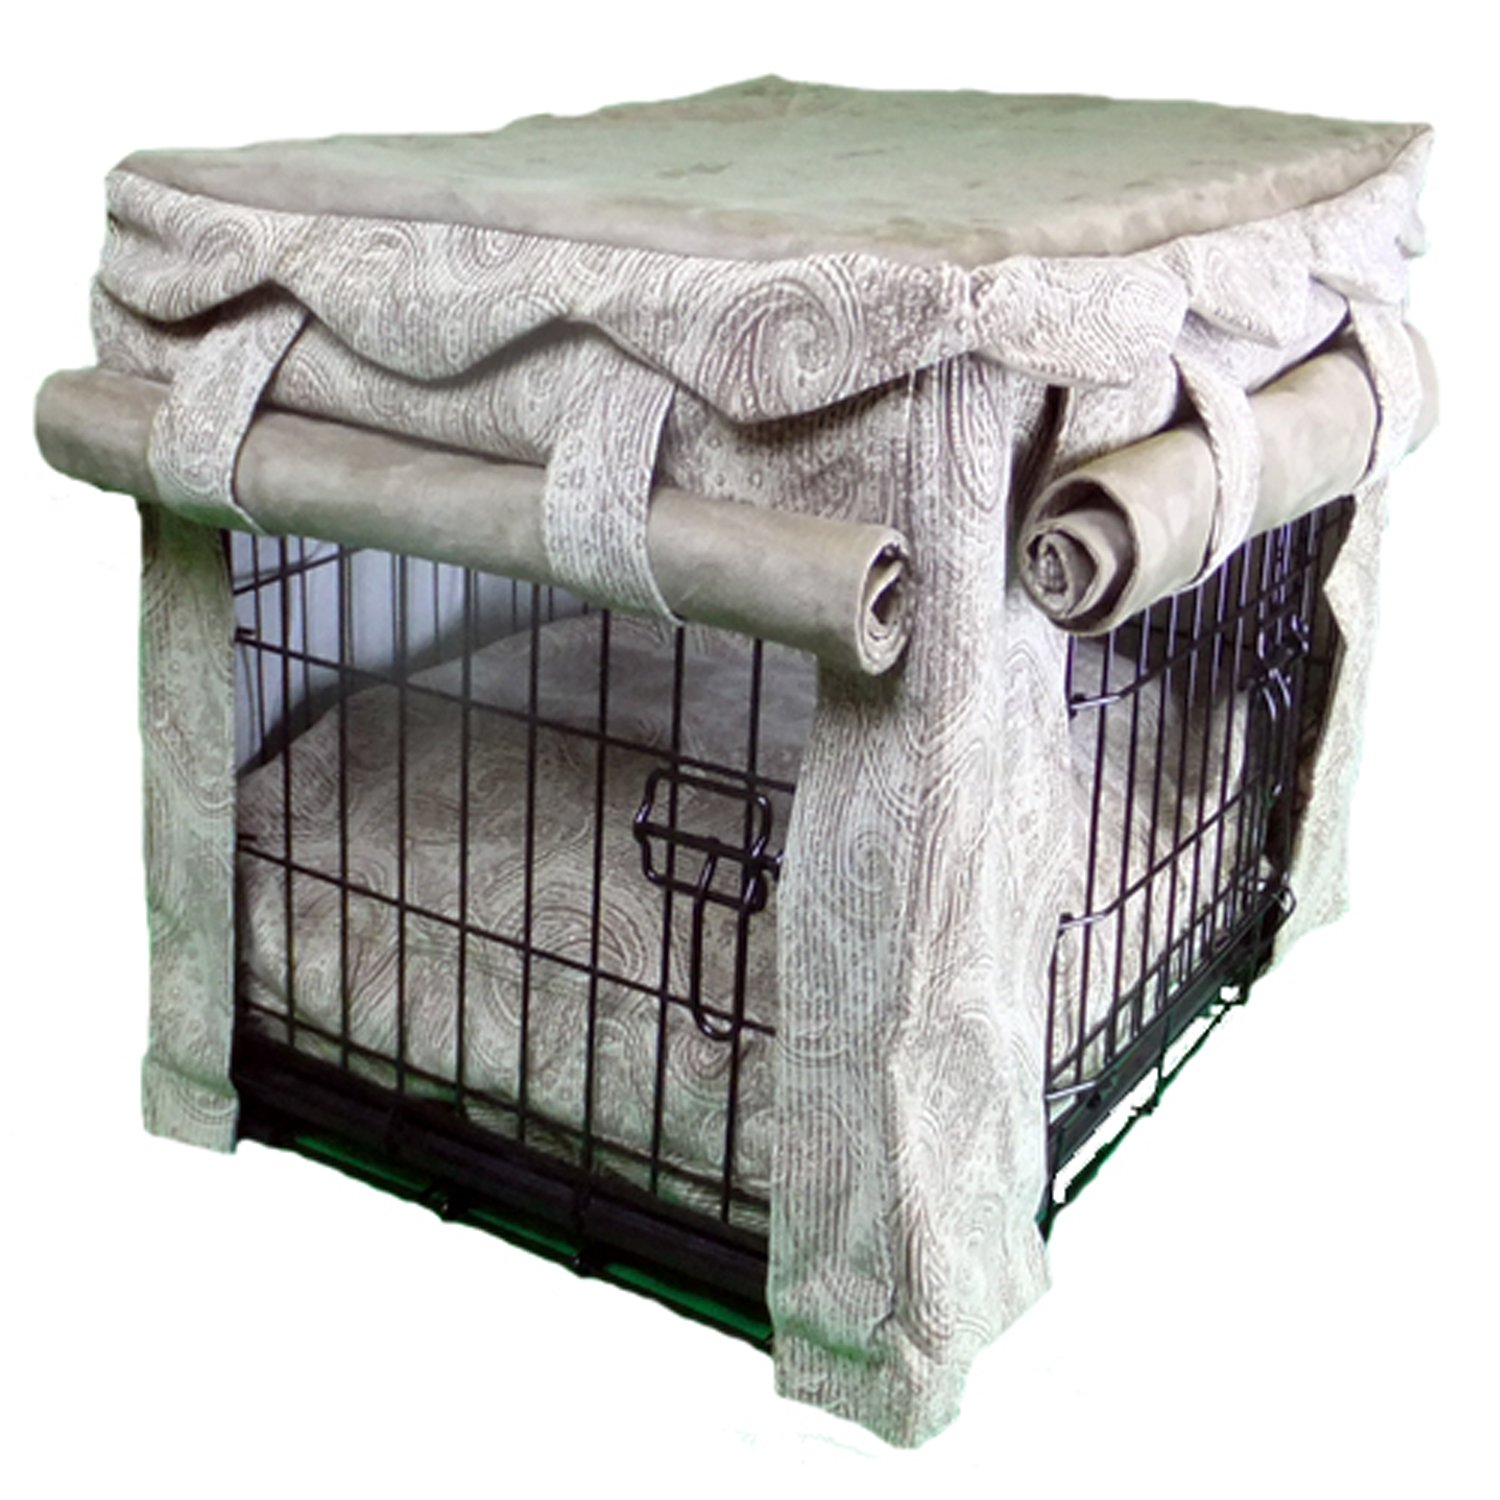 Snoozer Cabana Crate Cover in Sicilly Bone